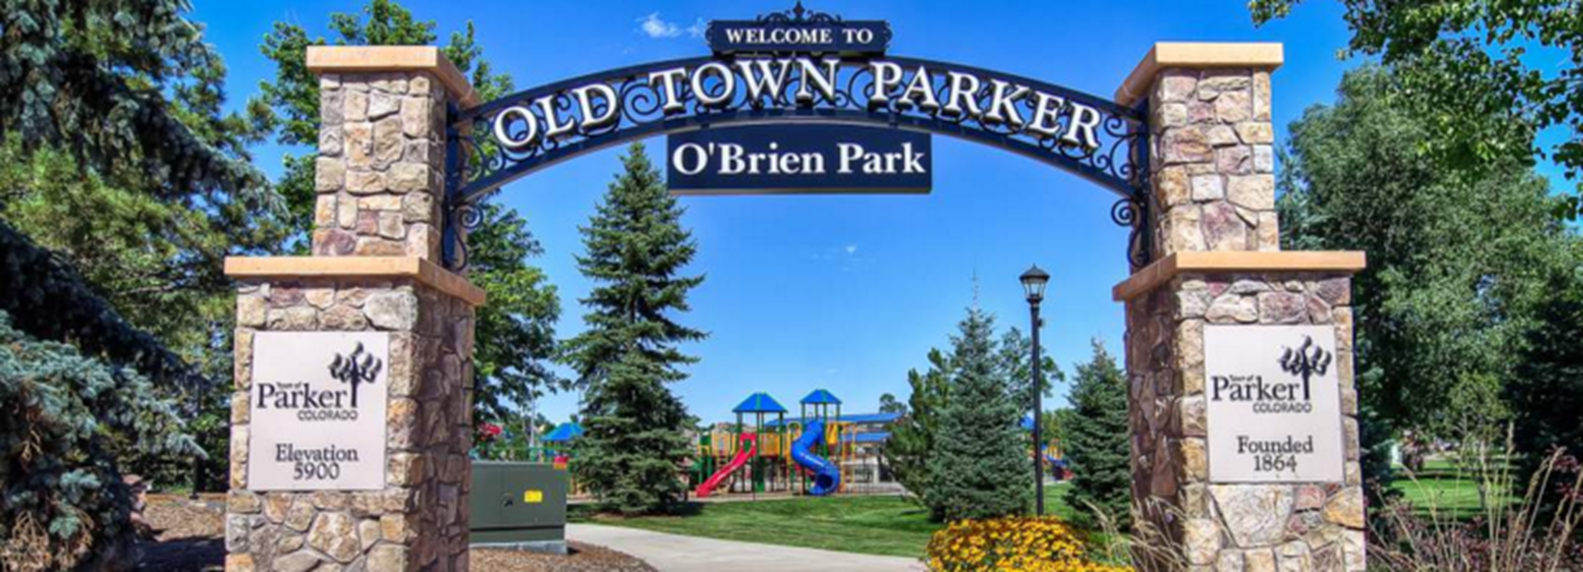 O'Brien Park in Parker Colorado